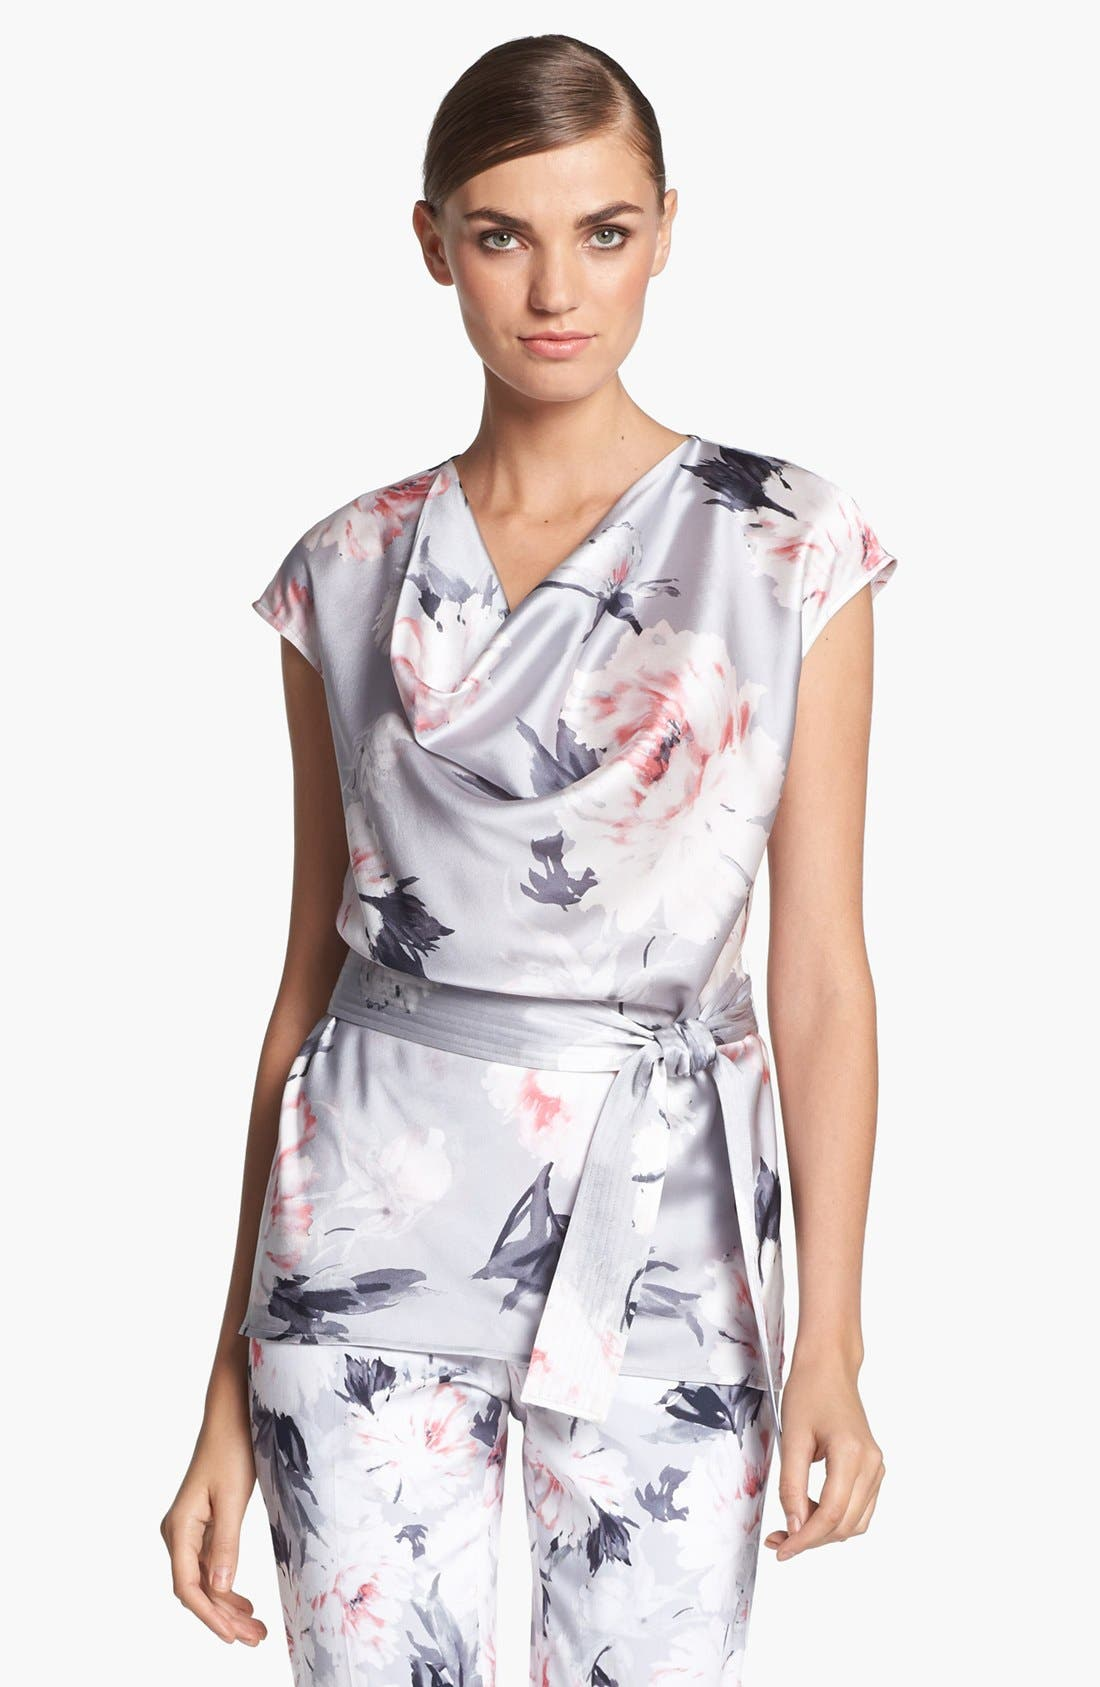 Alternate Image 1 Selected - St. John Collection Dahlia Print Charmeuse Blouse (Online Only)